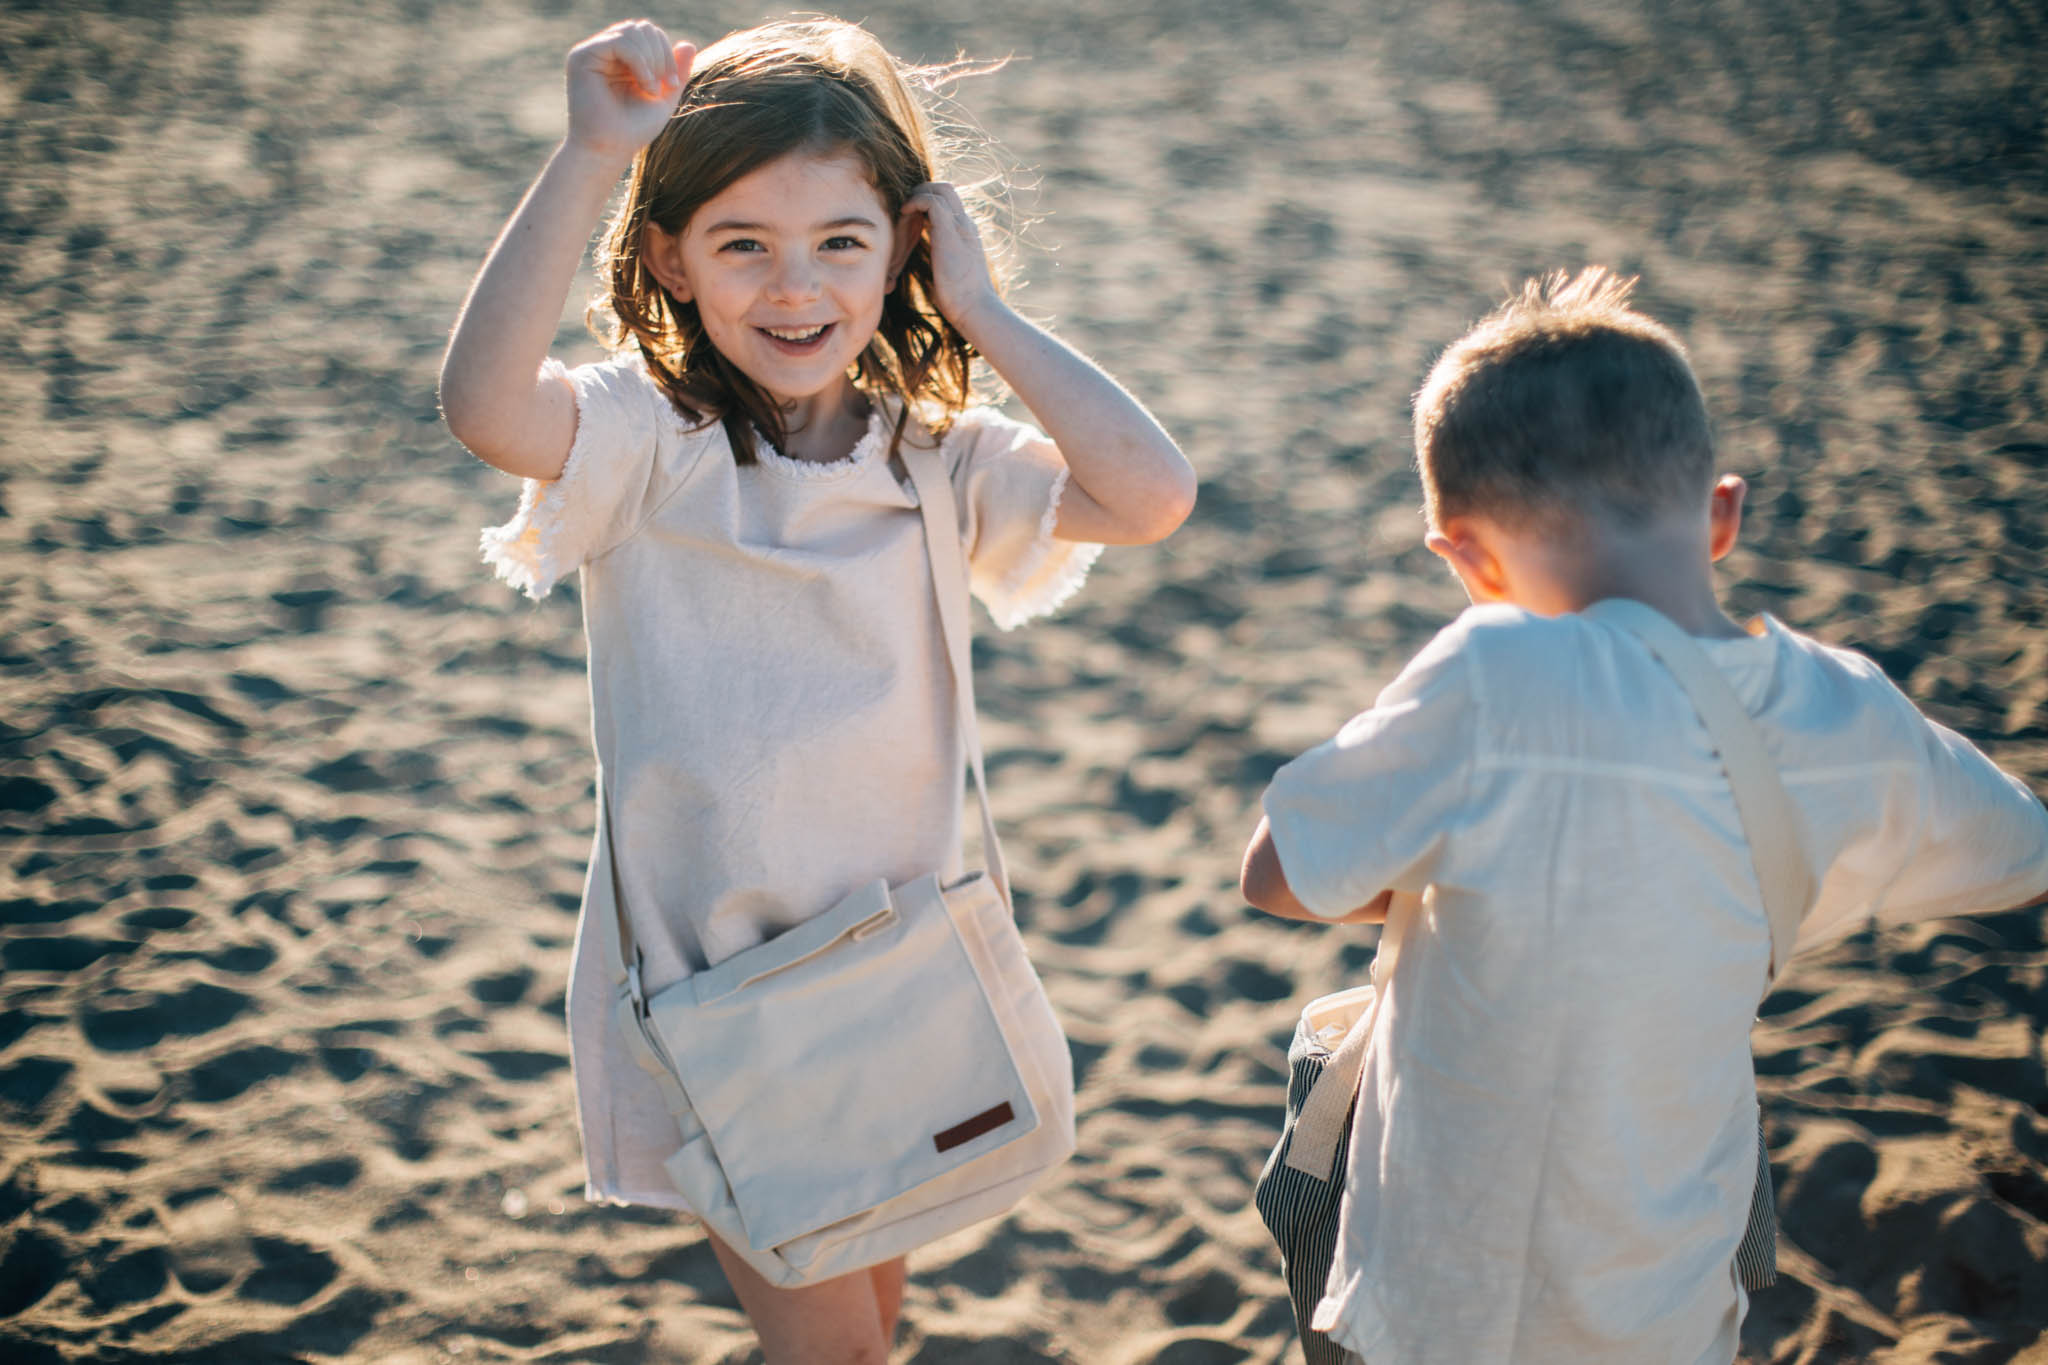 Vancouver Chlidren's Fashion Lifestyle Product Photographer -Emmy Lou Virginia Photography-5.jpg